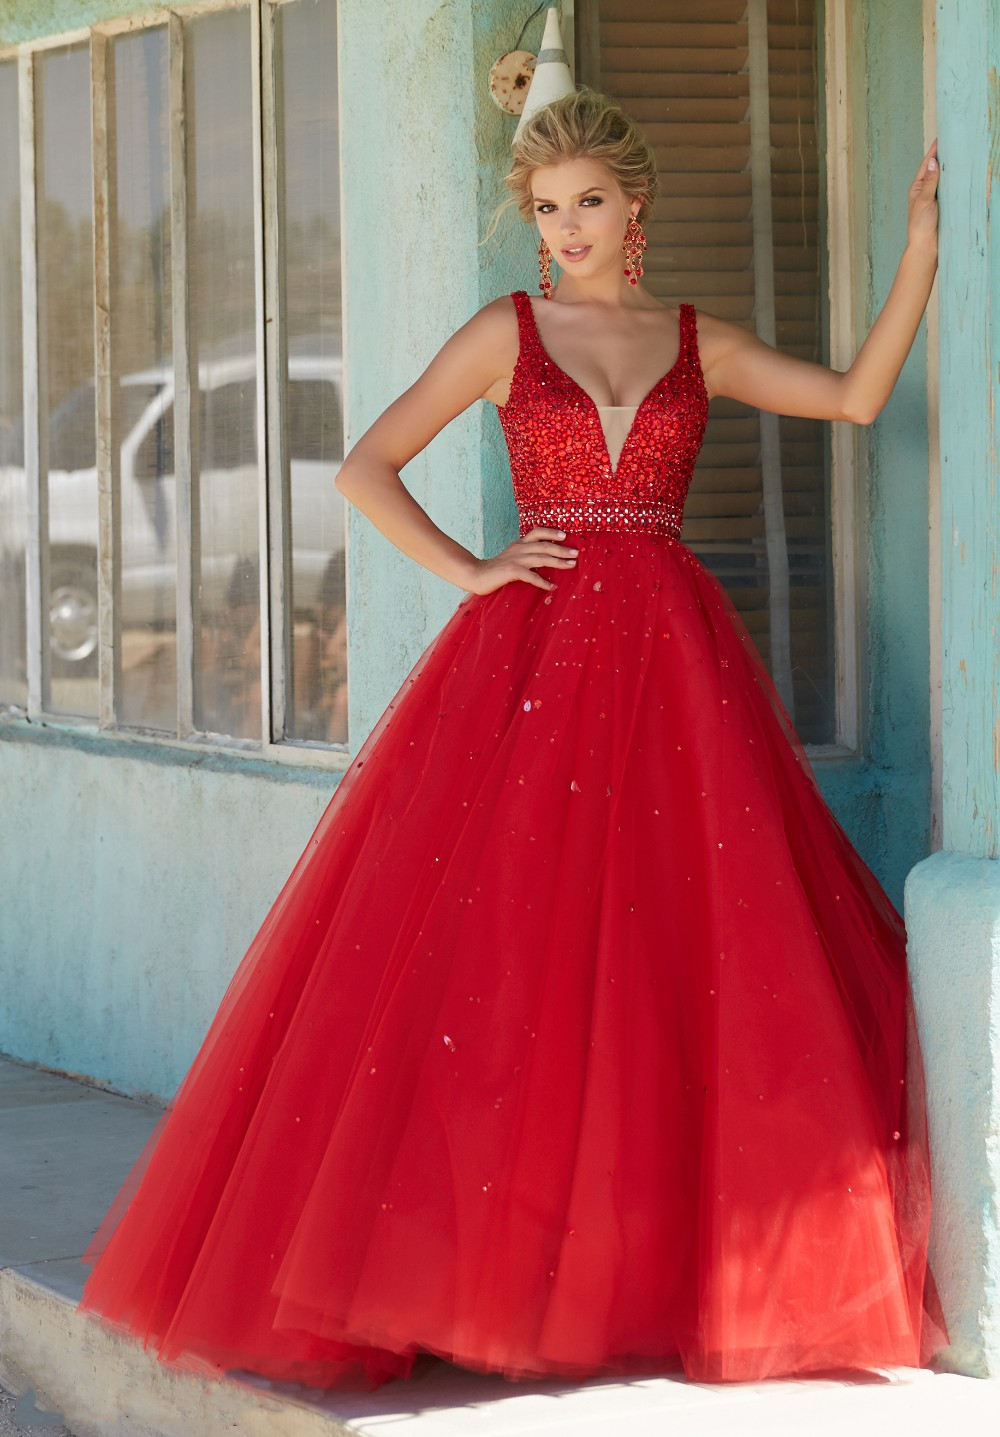 Masquerade Dresses in Red a Line